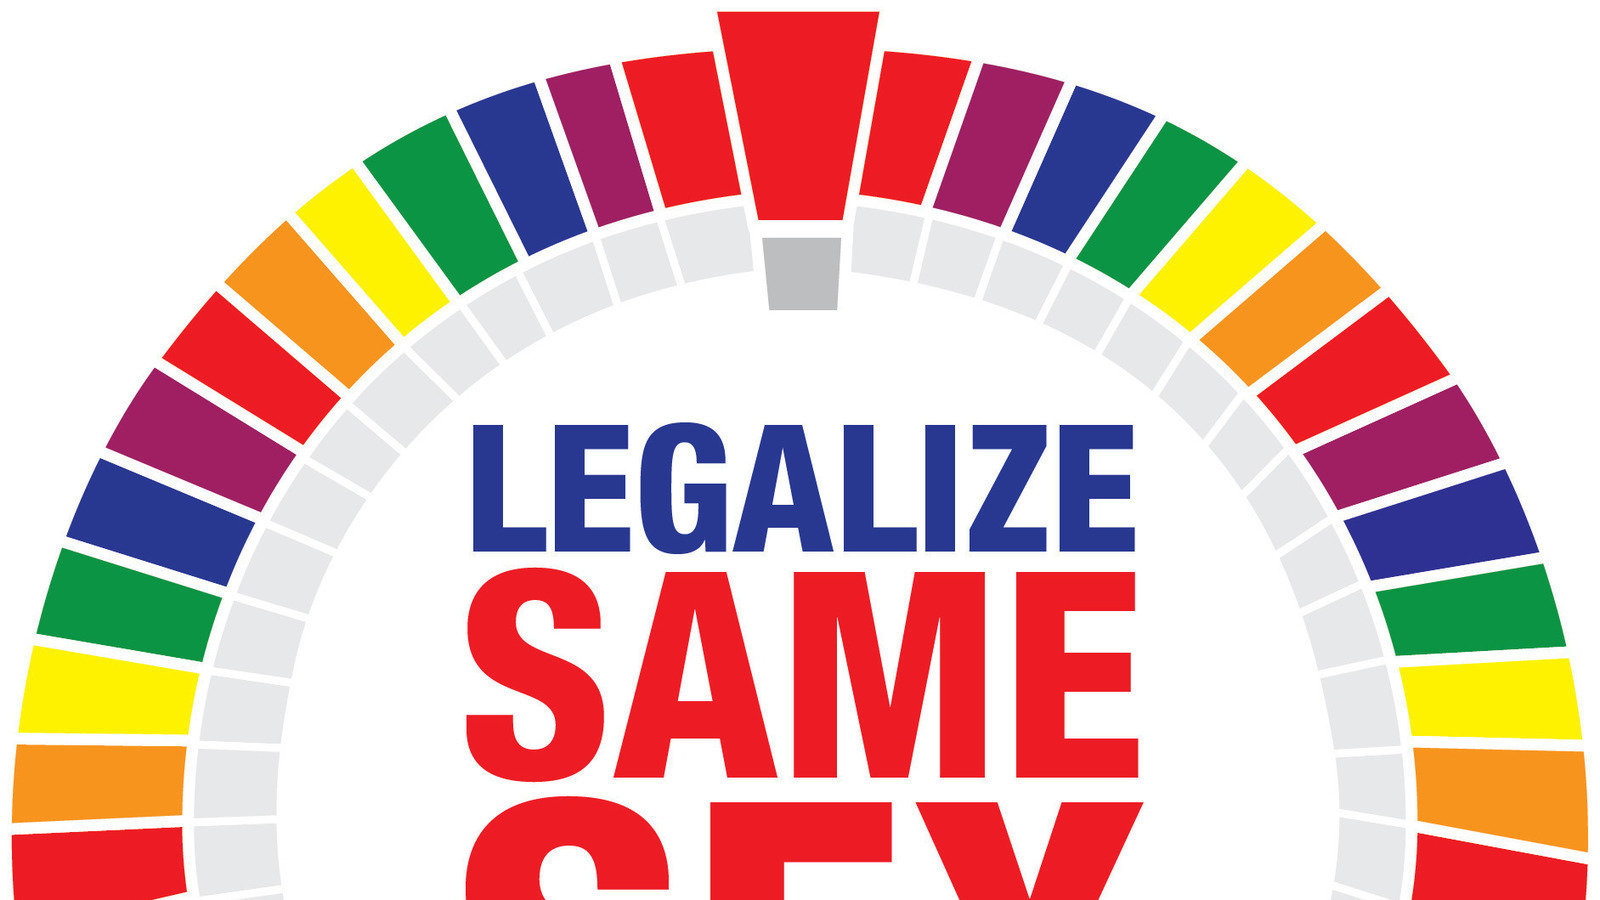 petition middot the bermuda government legalize same sex marriage petition middot the bermuda government legalize same sex marriage and implement complete and full human rights for all bermuda citizens ors